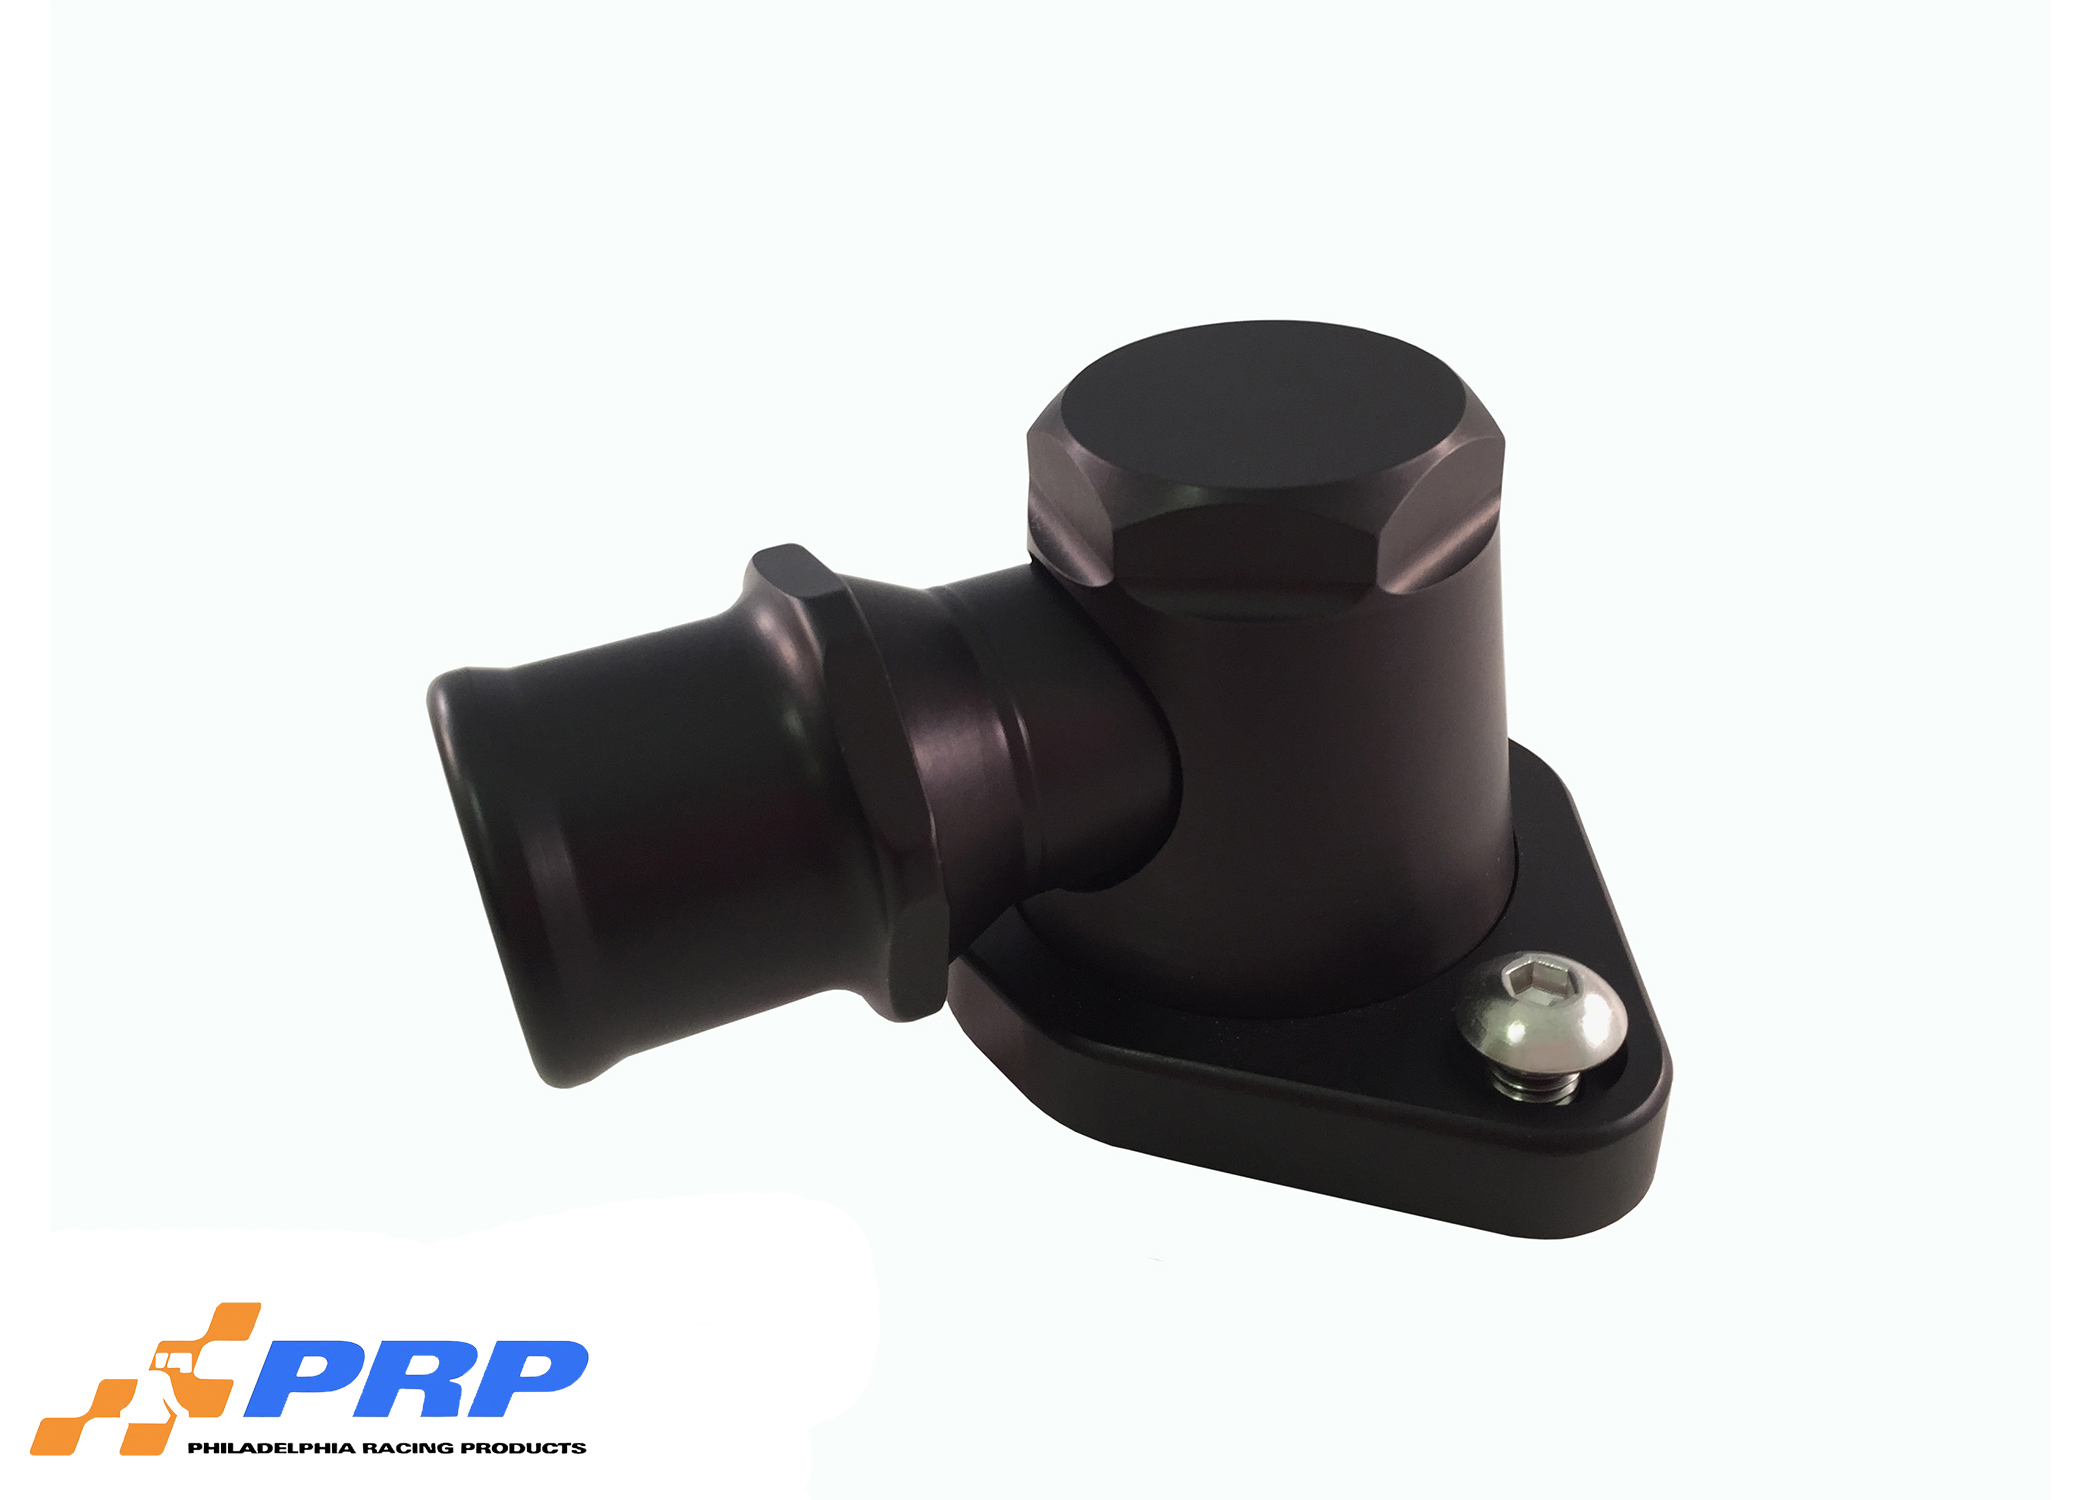 Black Billet Swivel Water Necks made by PRP Racing Products